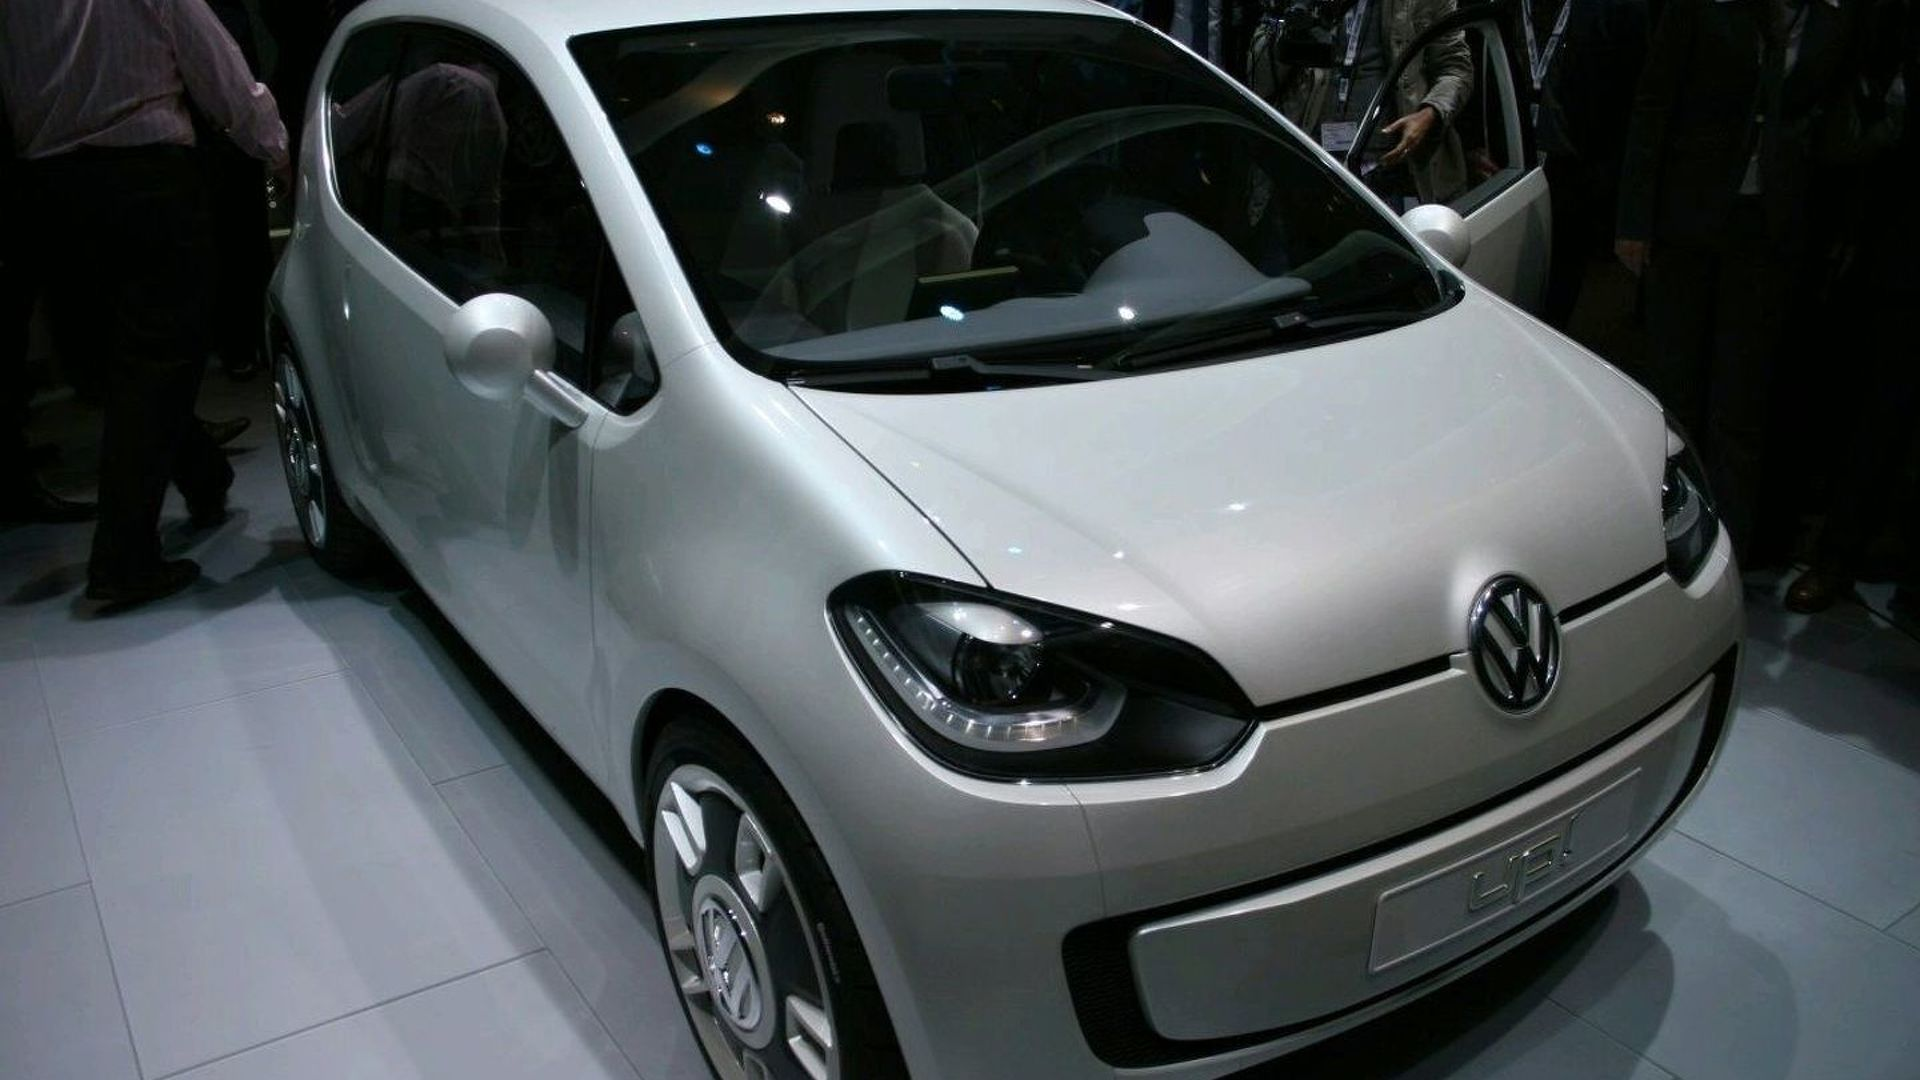 Volkswagen Up! Blue E-motion to get 95 mpg - report